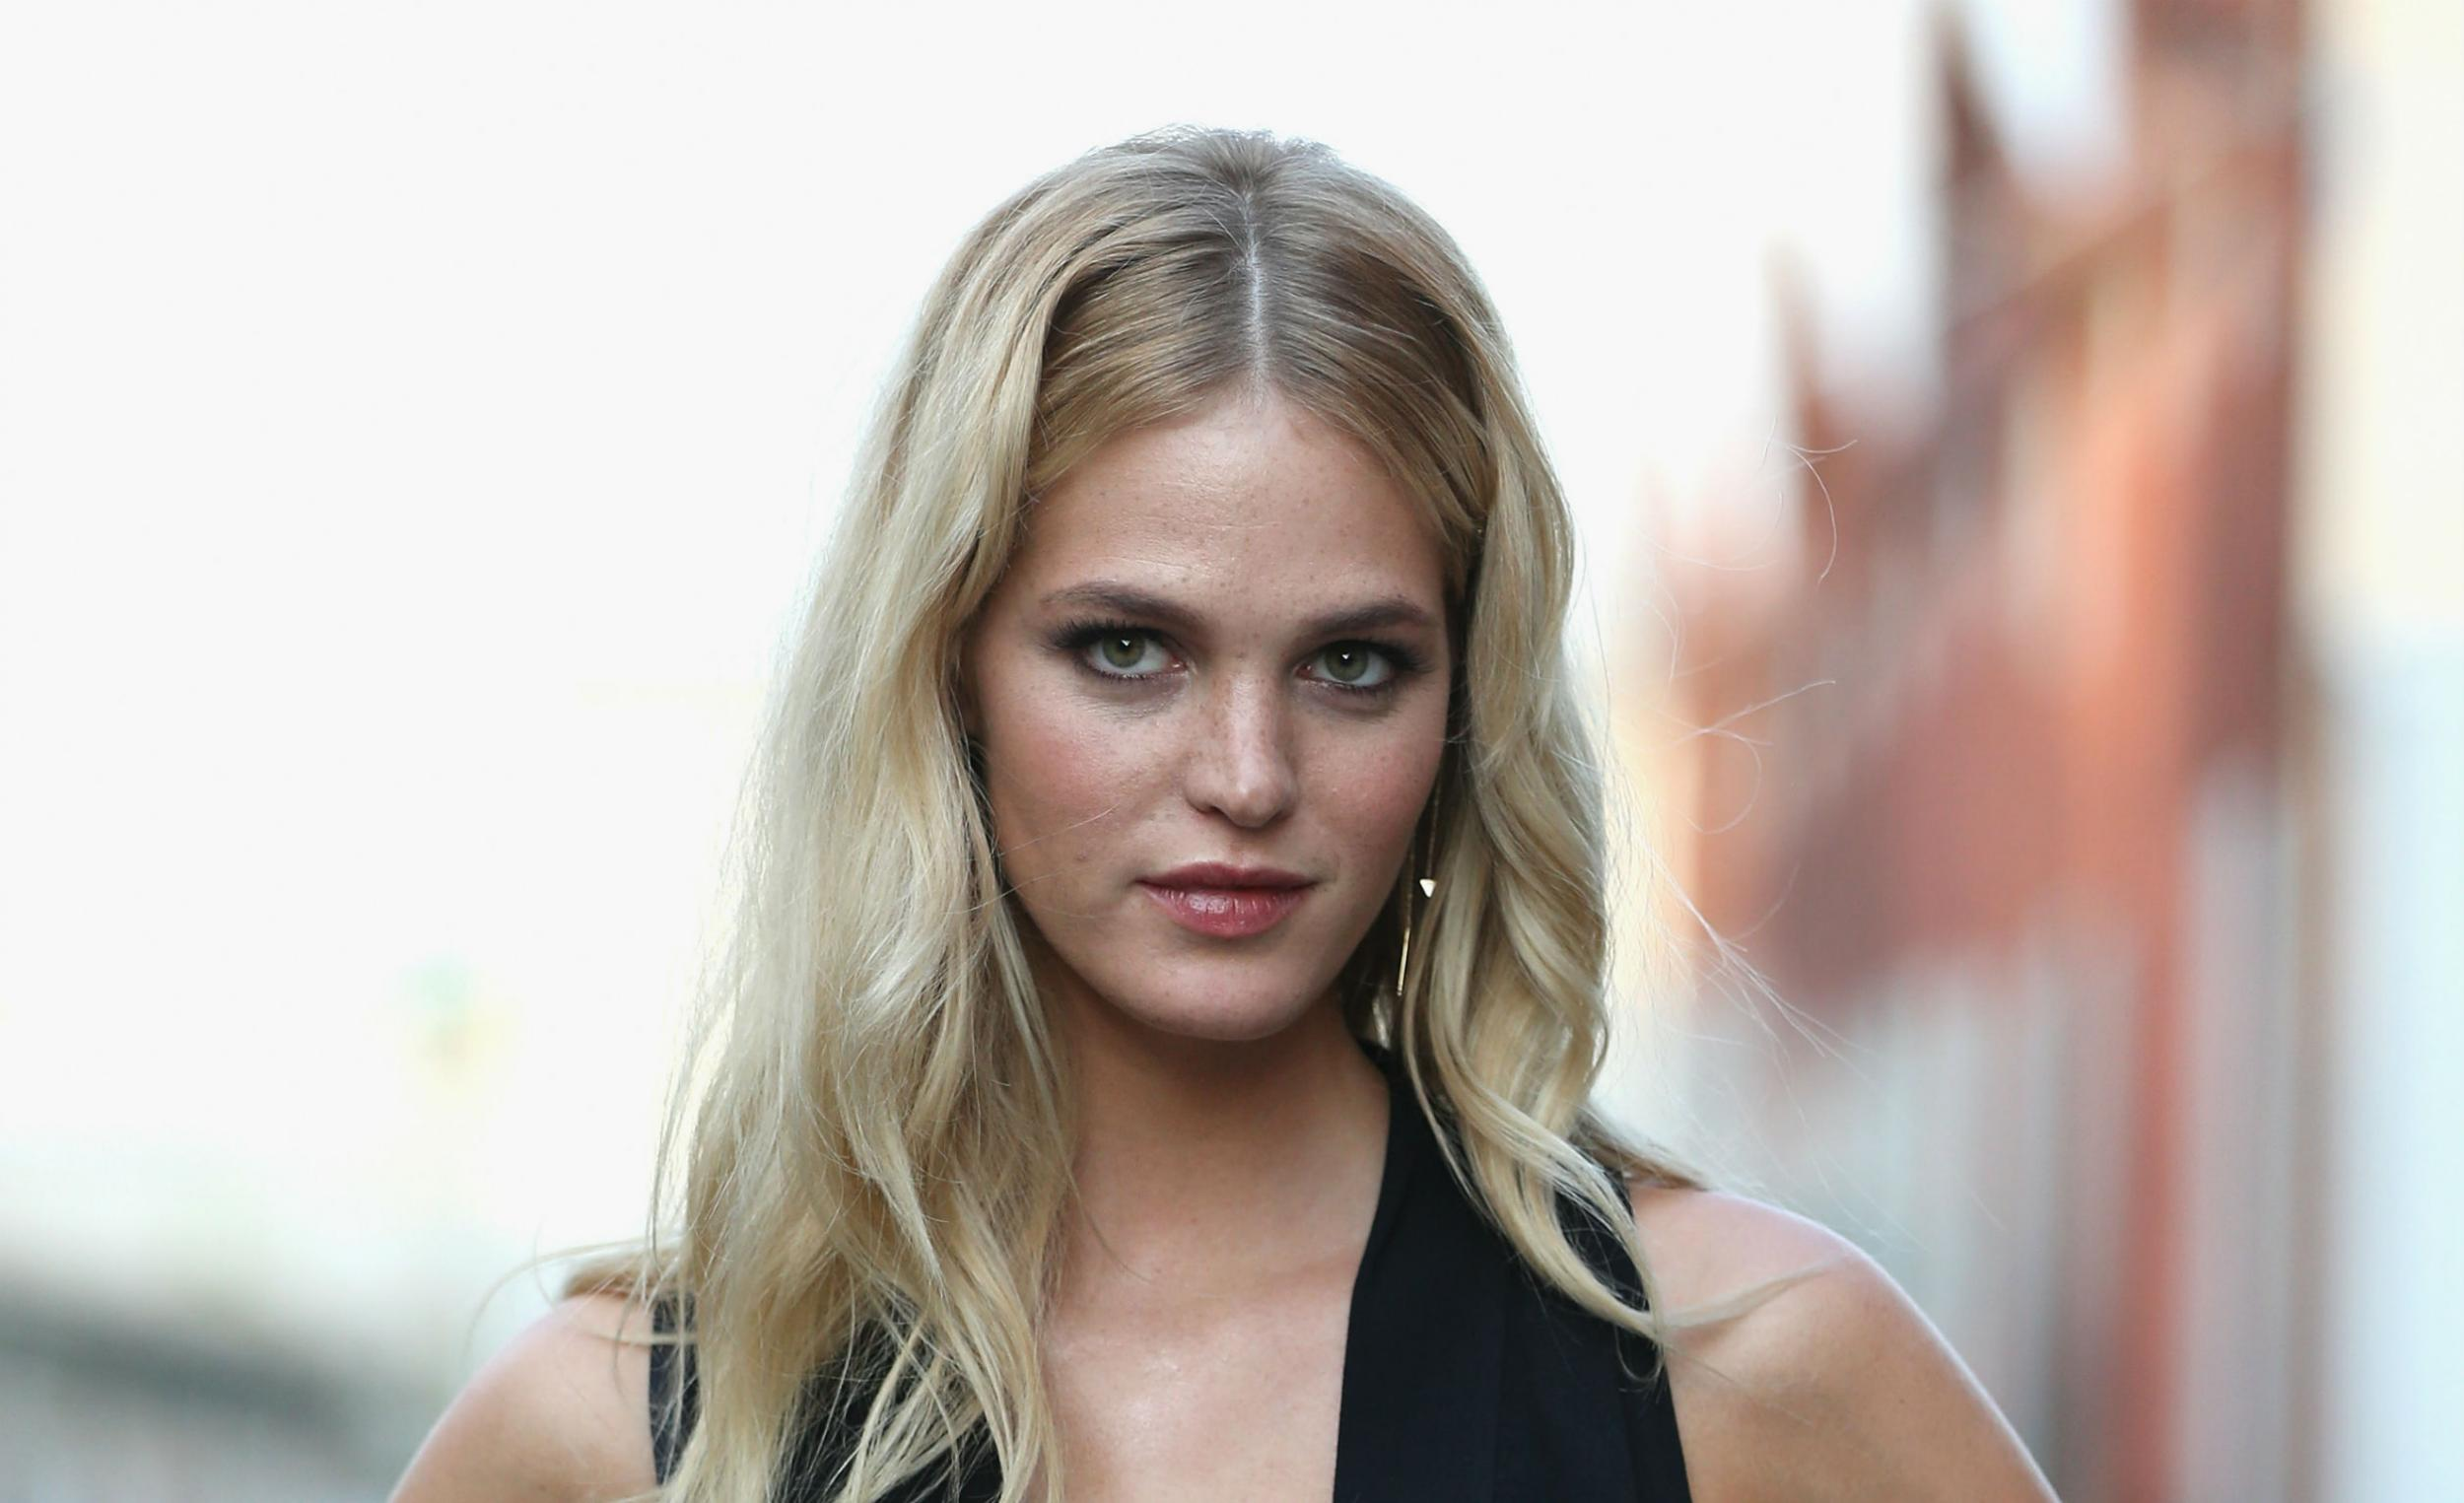 Leaked Young Erin Heatherton naked photo 2017